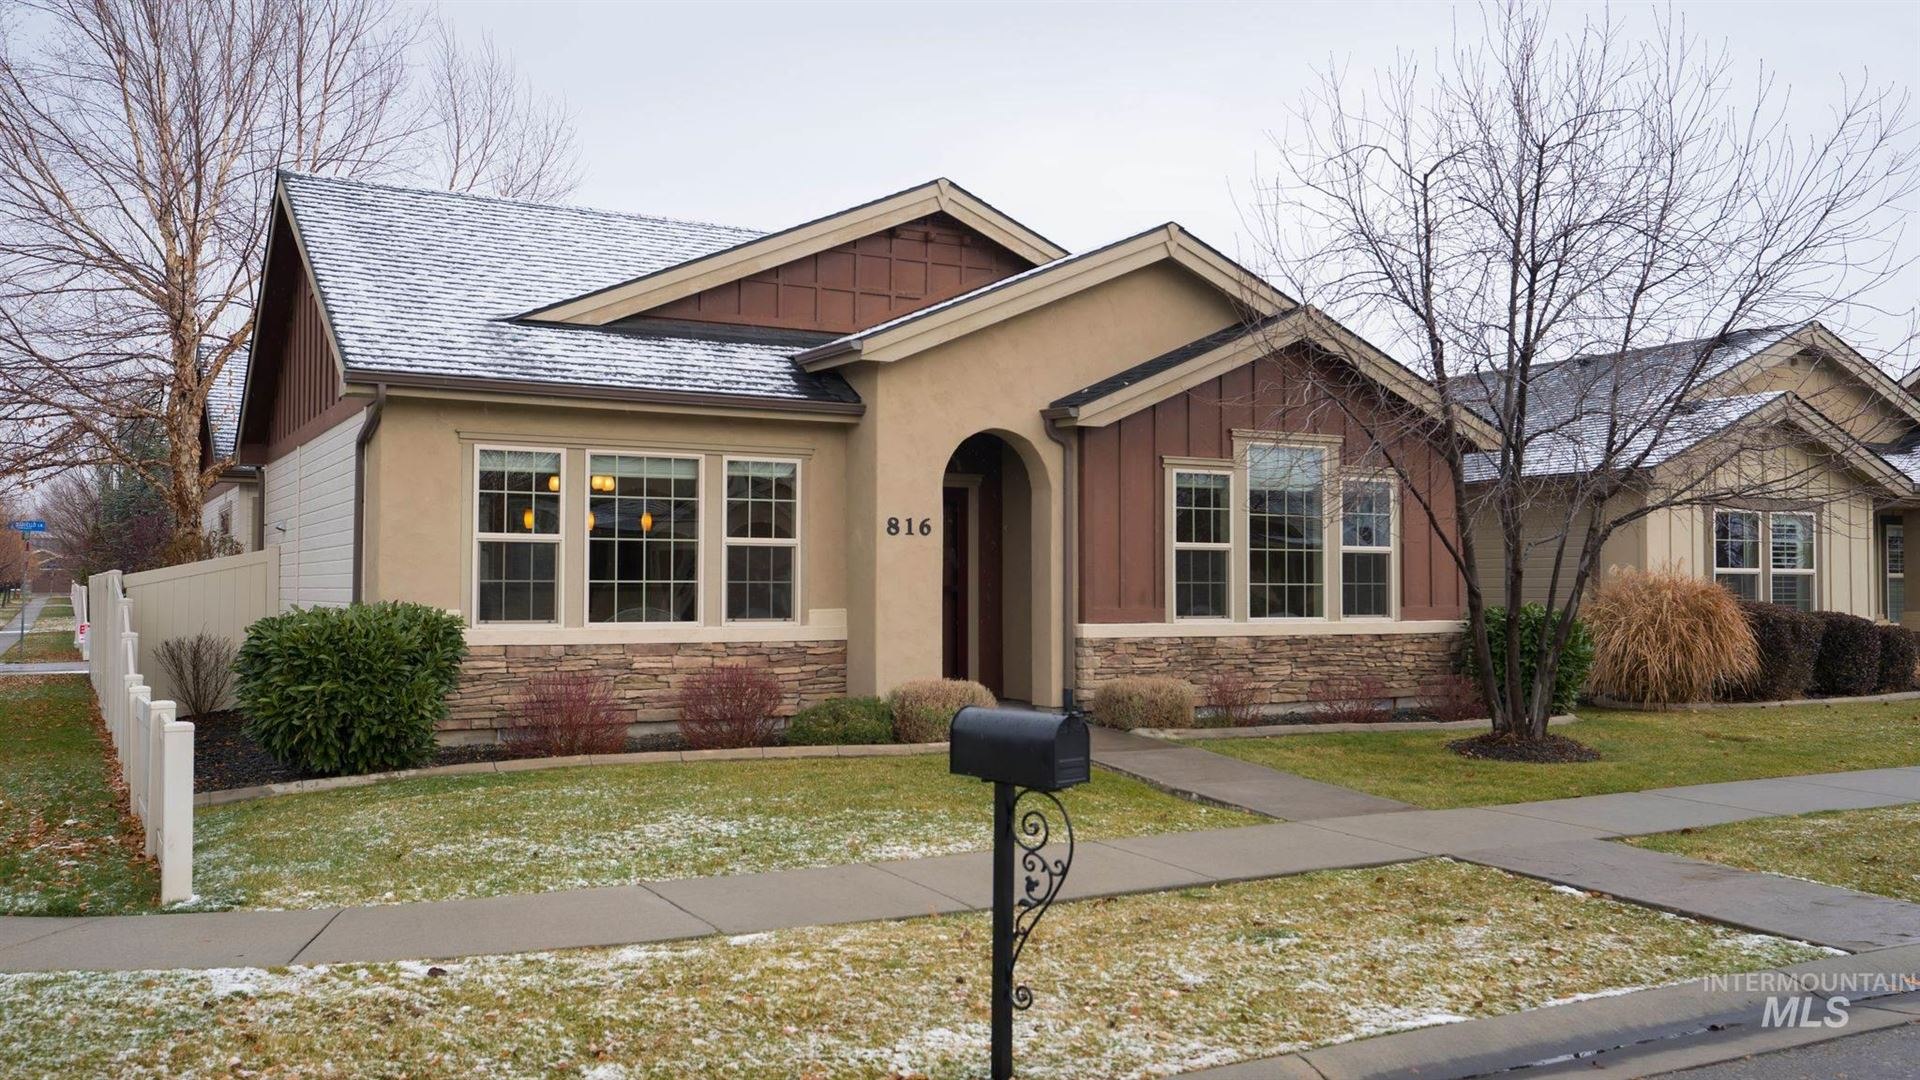 Photo of 816 E Tallinn, Meridian, ID 83646 (MLS # 98787820)